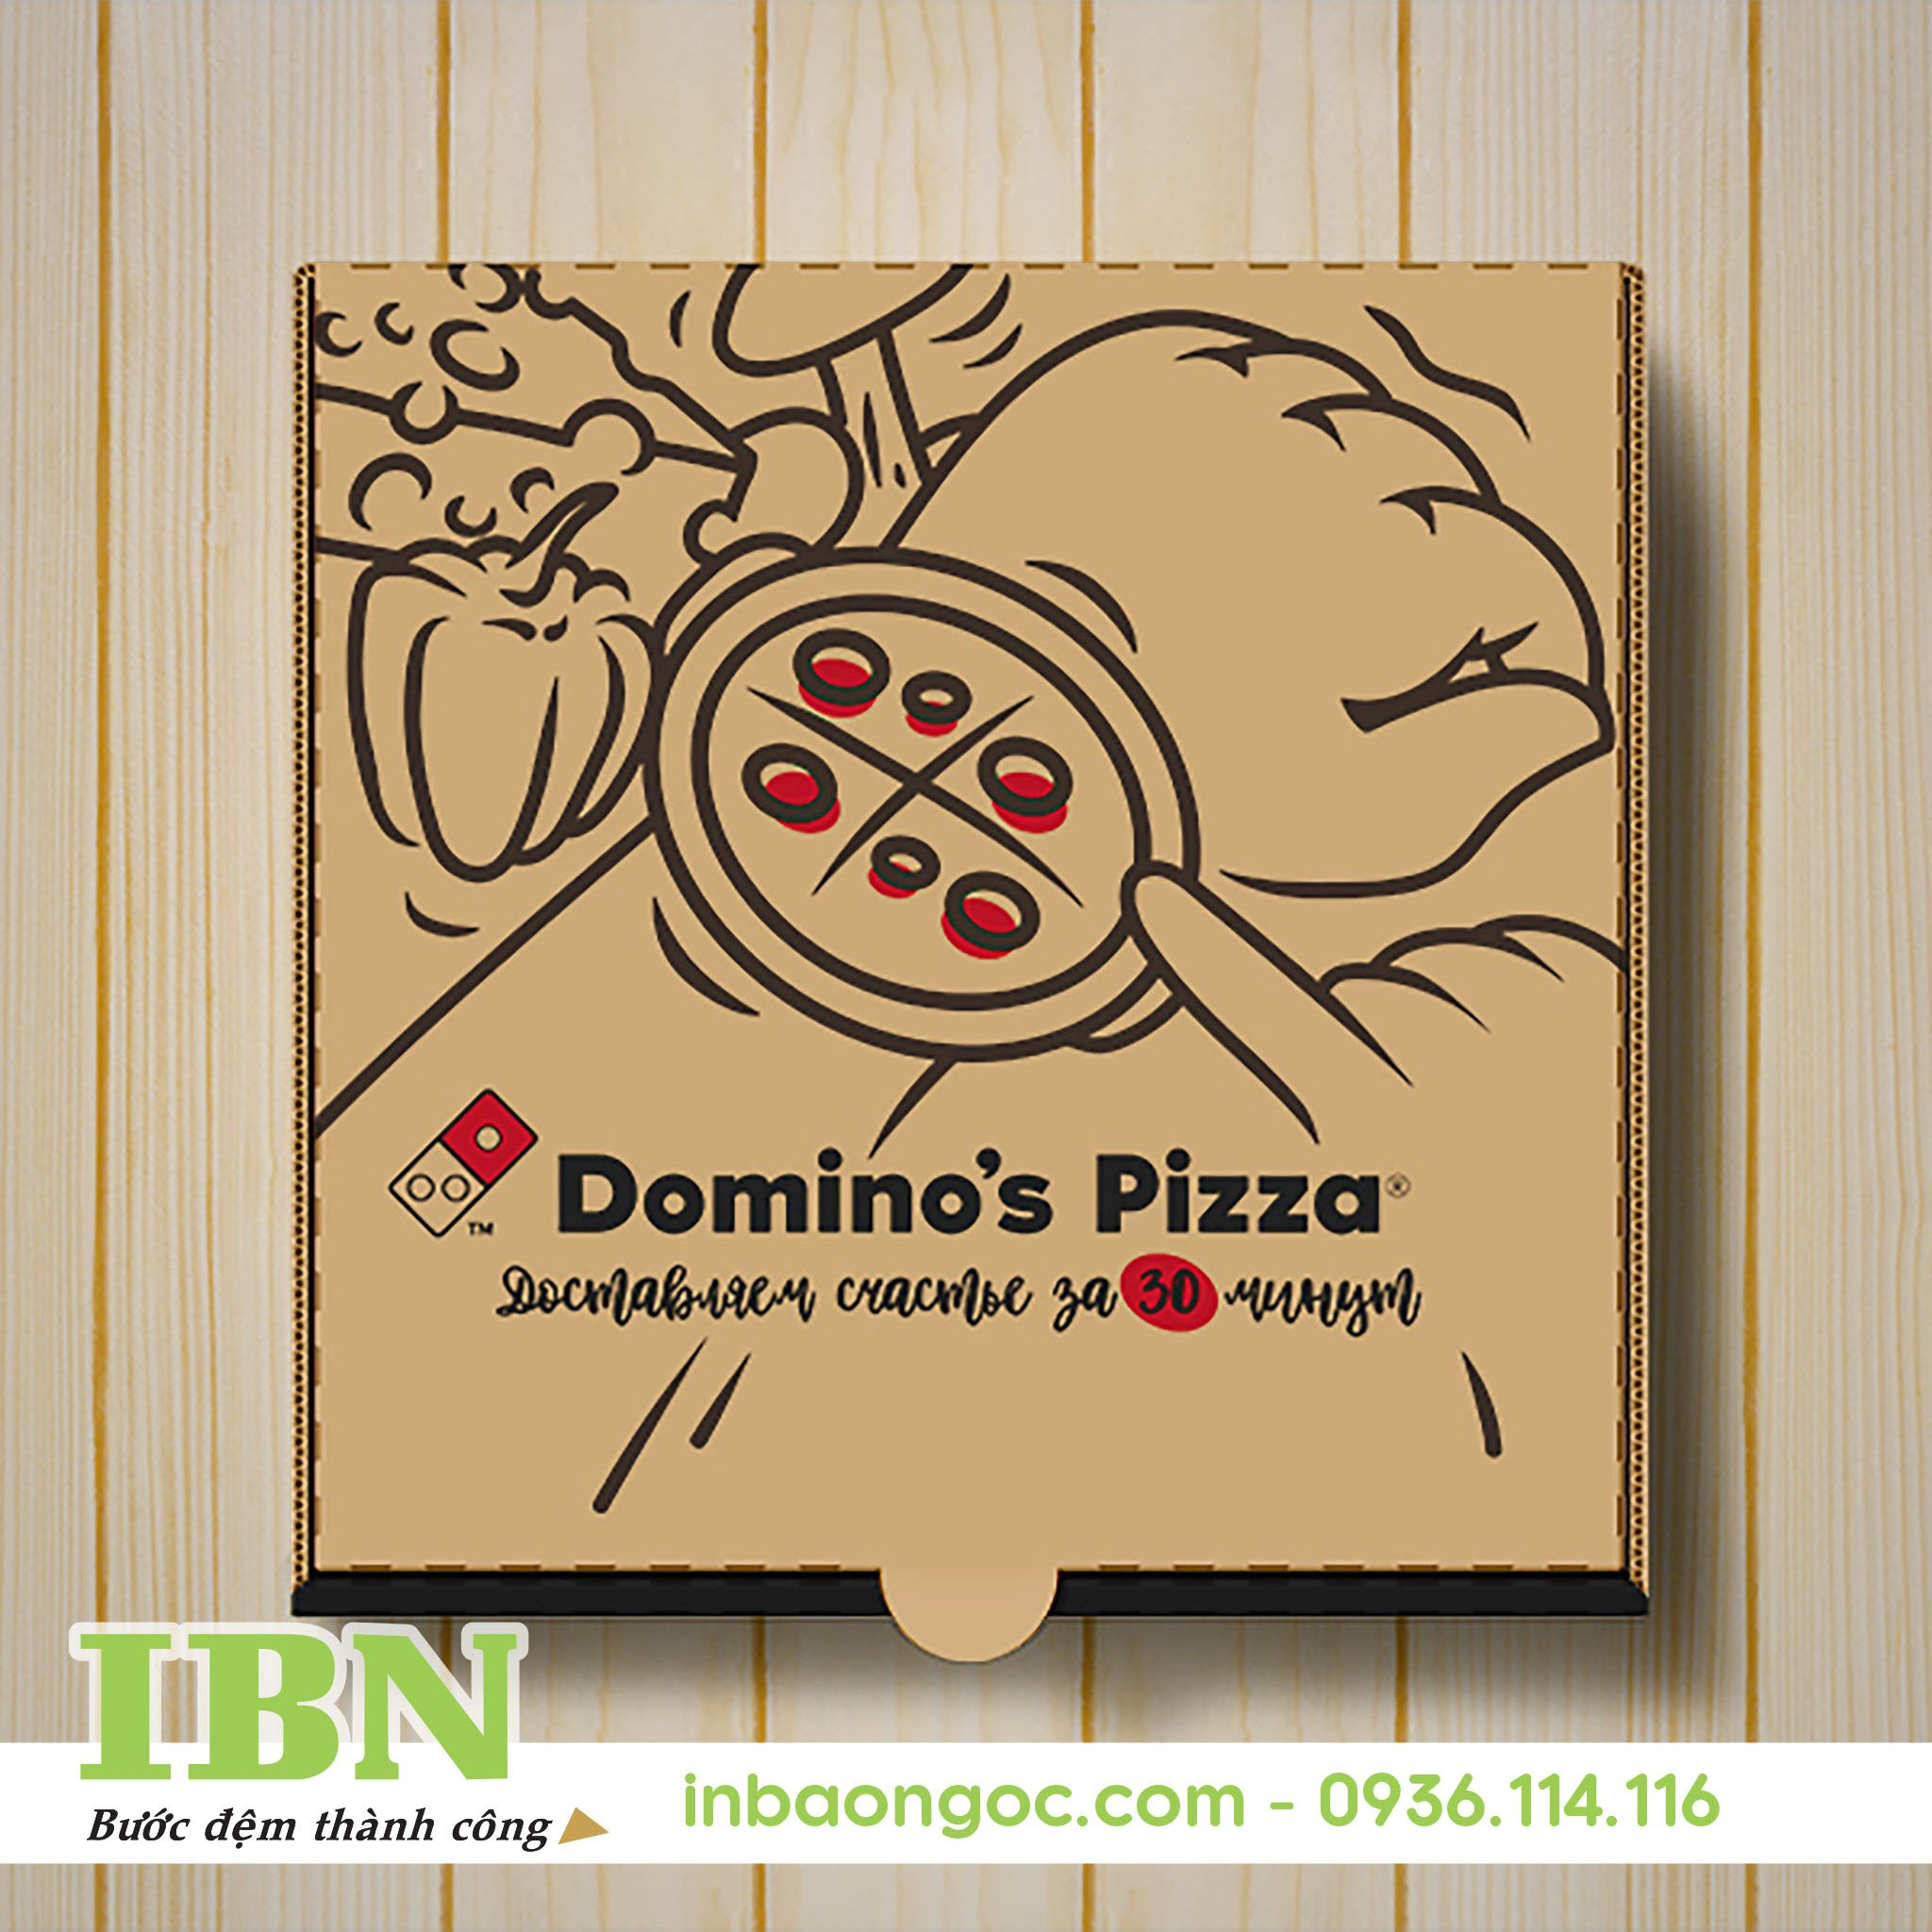 in hop dung pizza (1)